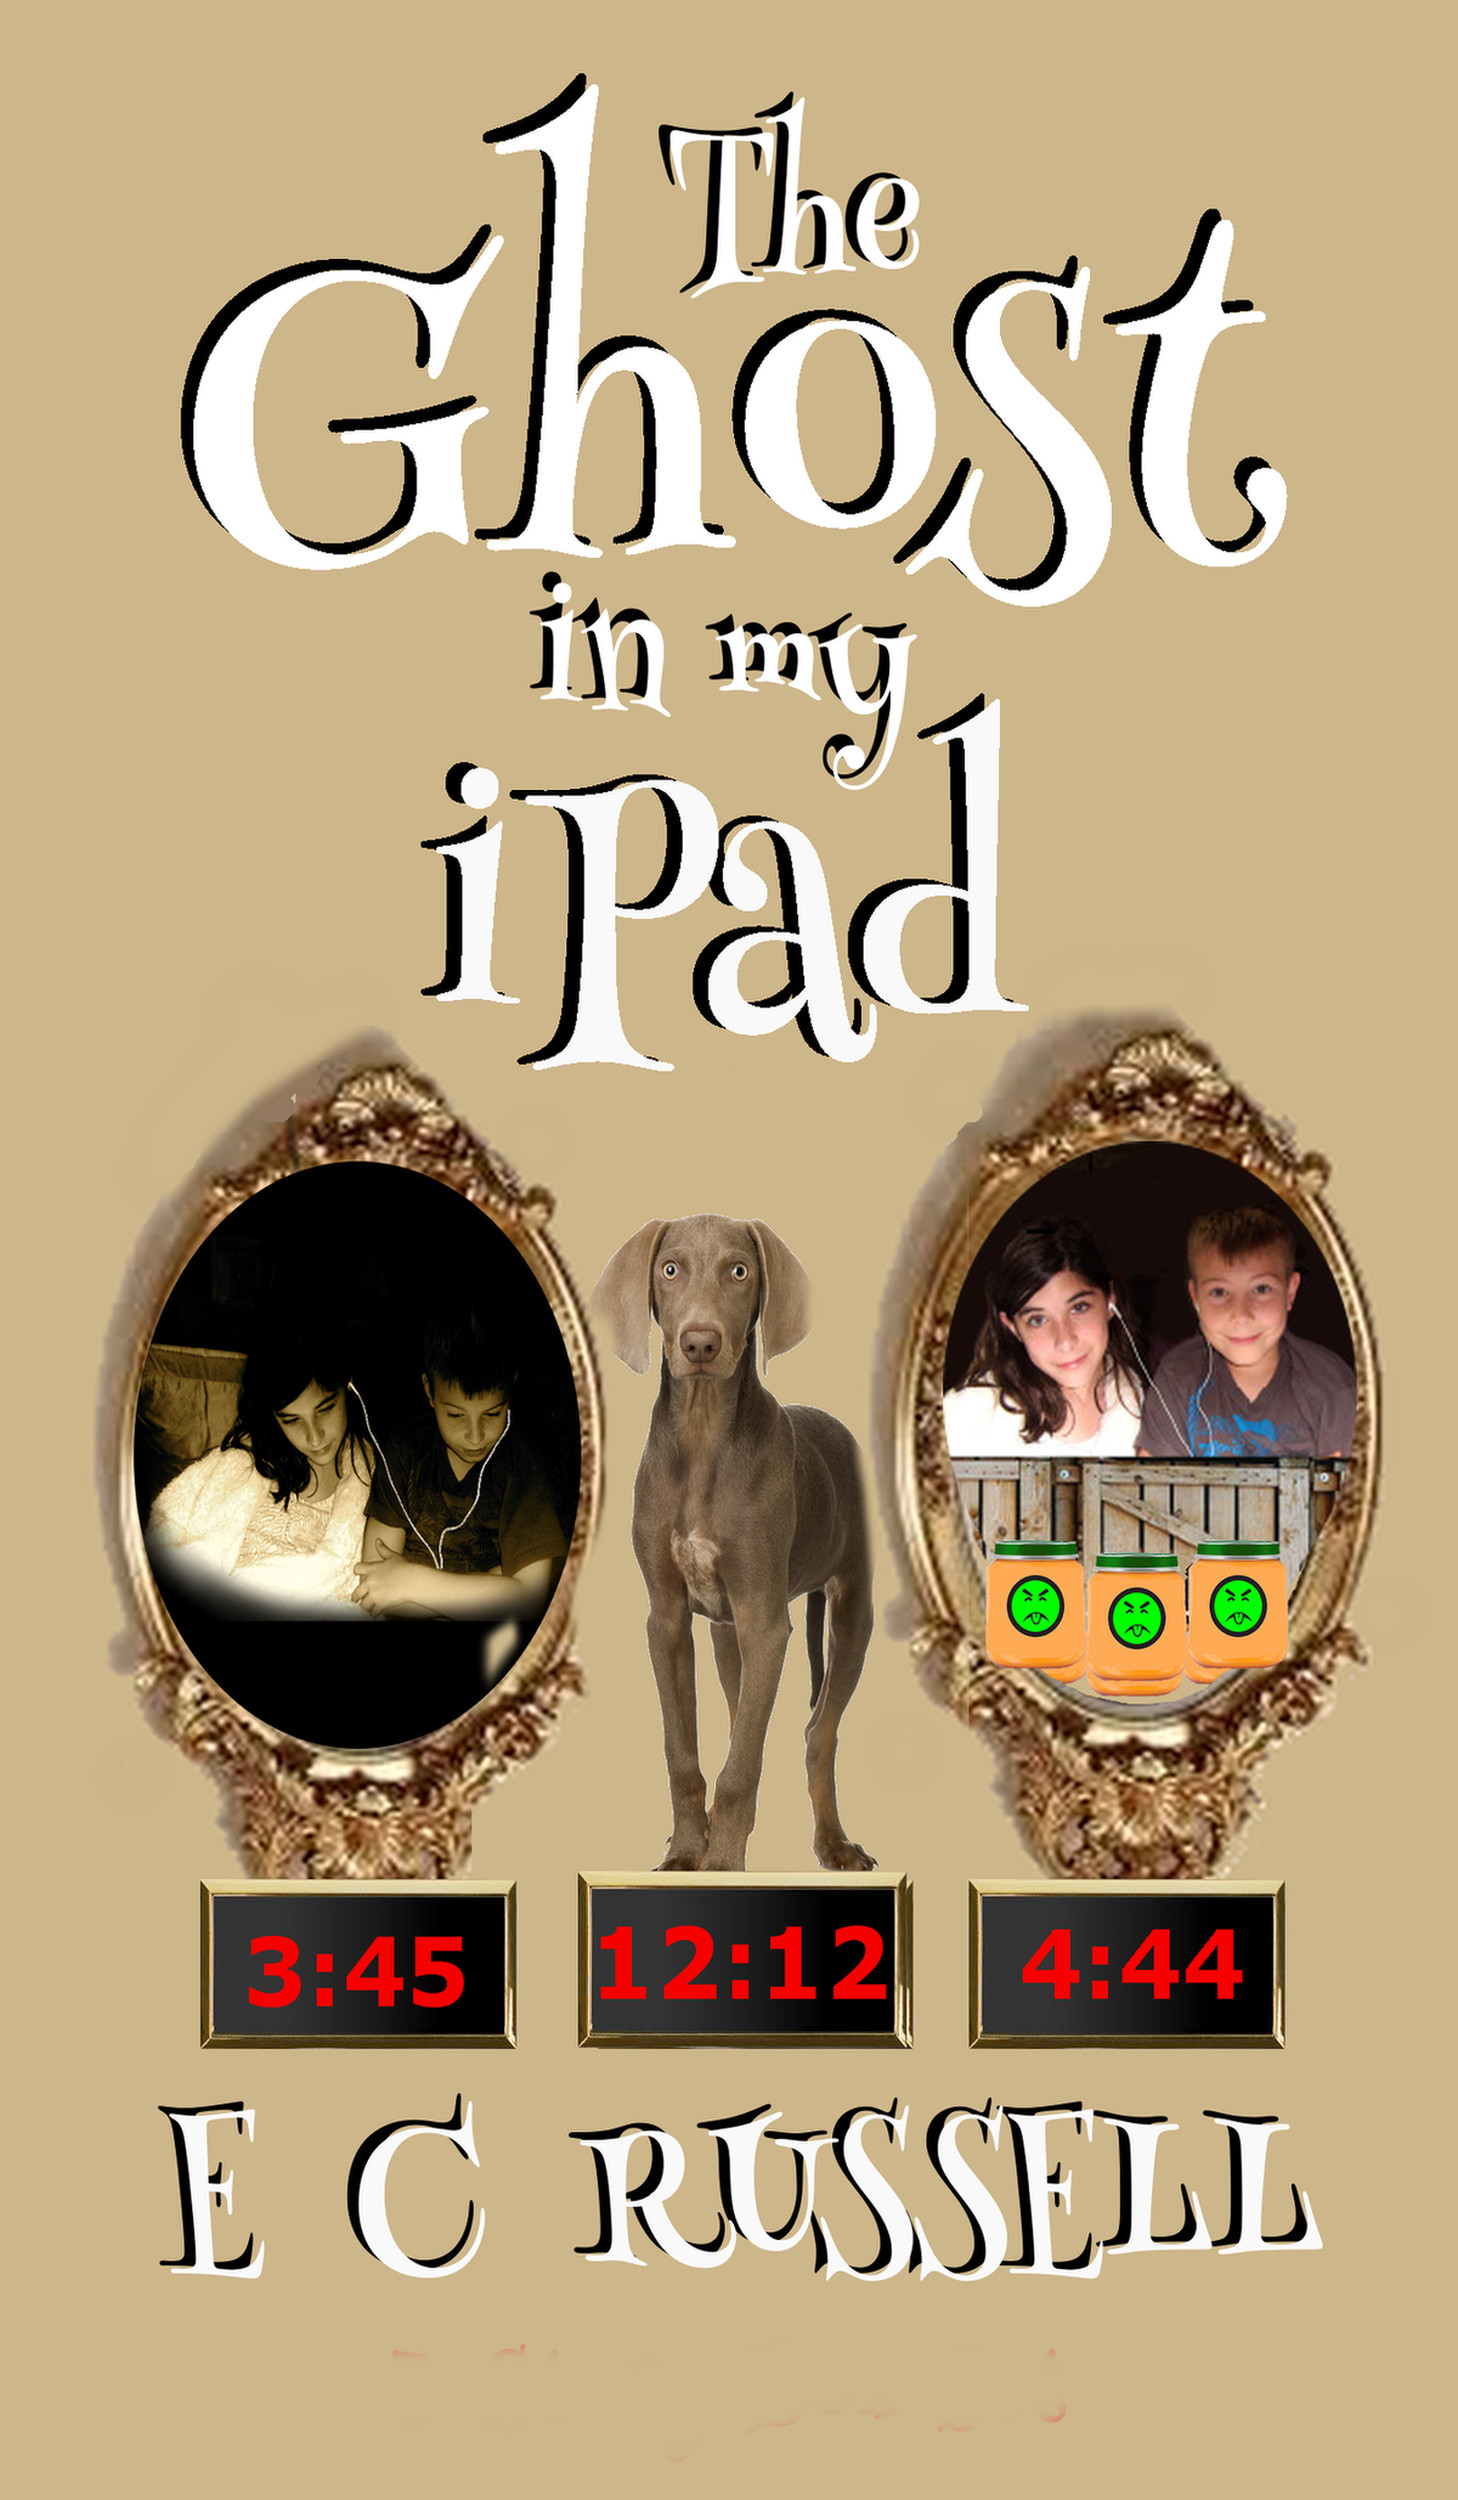 The Ghost in my iPad 3:45 4:44 12:12, an Ebook by E L Russell